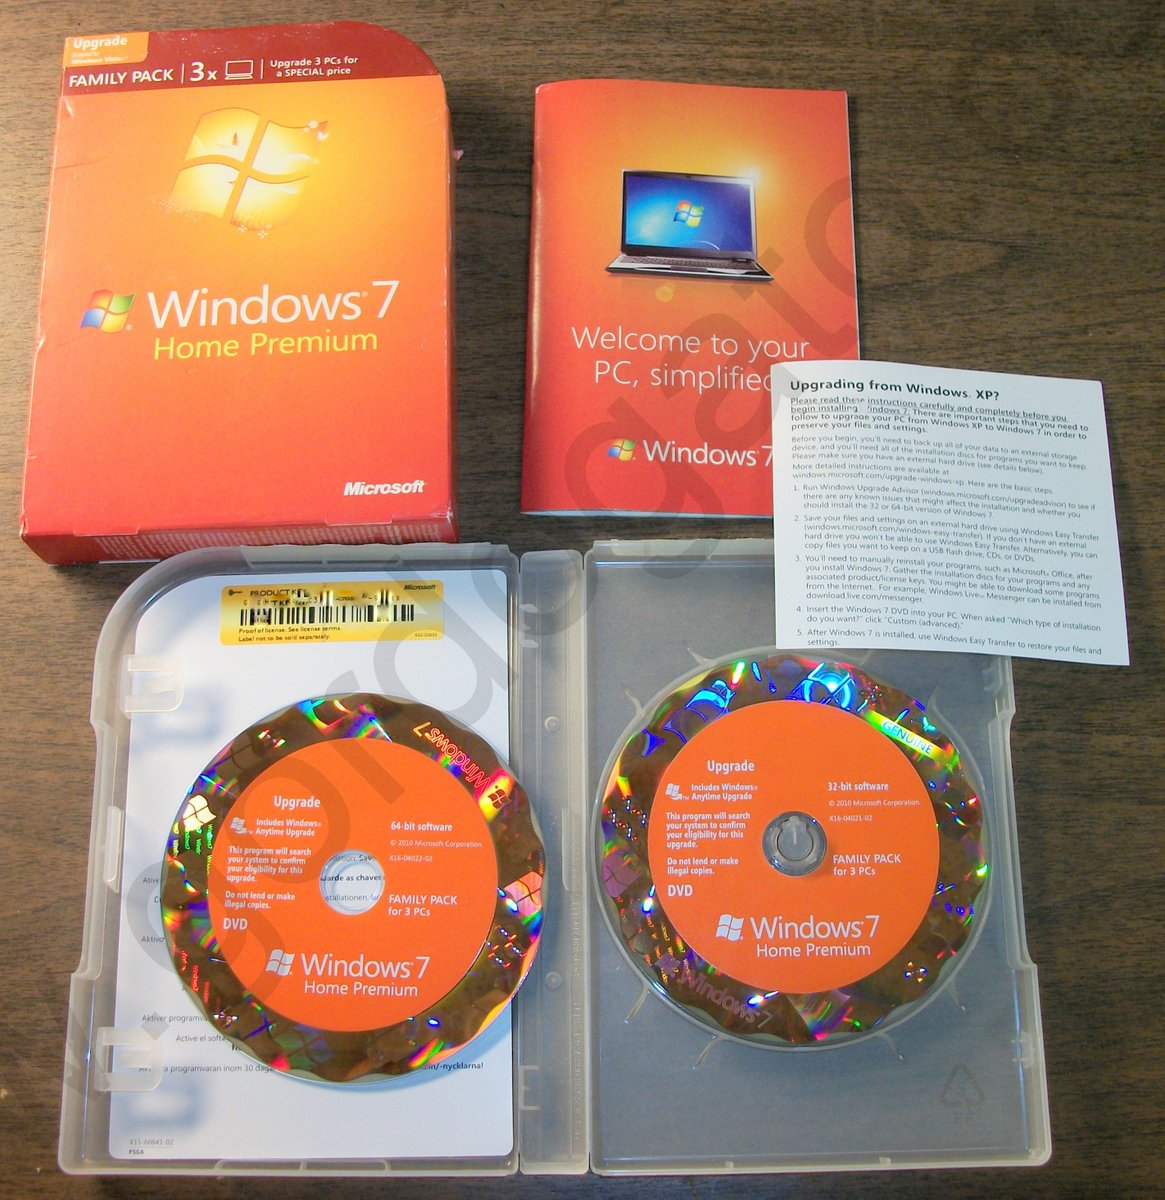 how much is Windows 7 Home Premium Family Pack student edition?